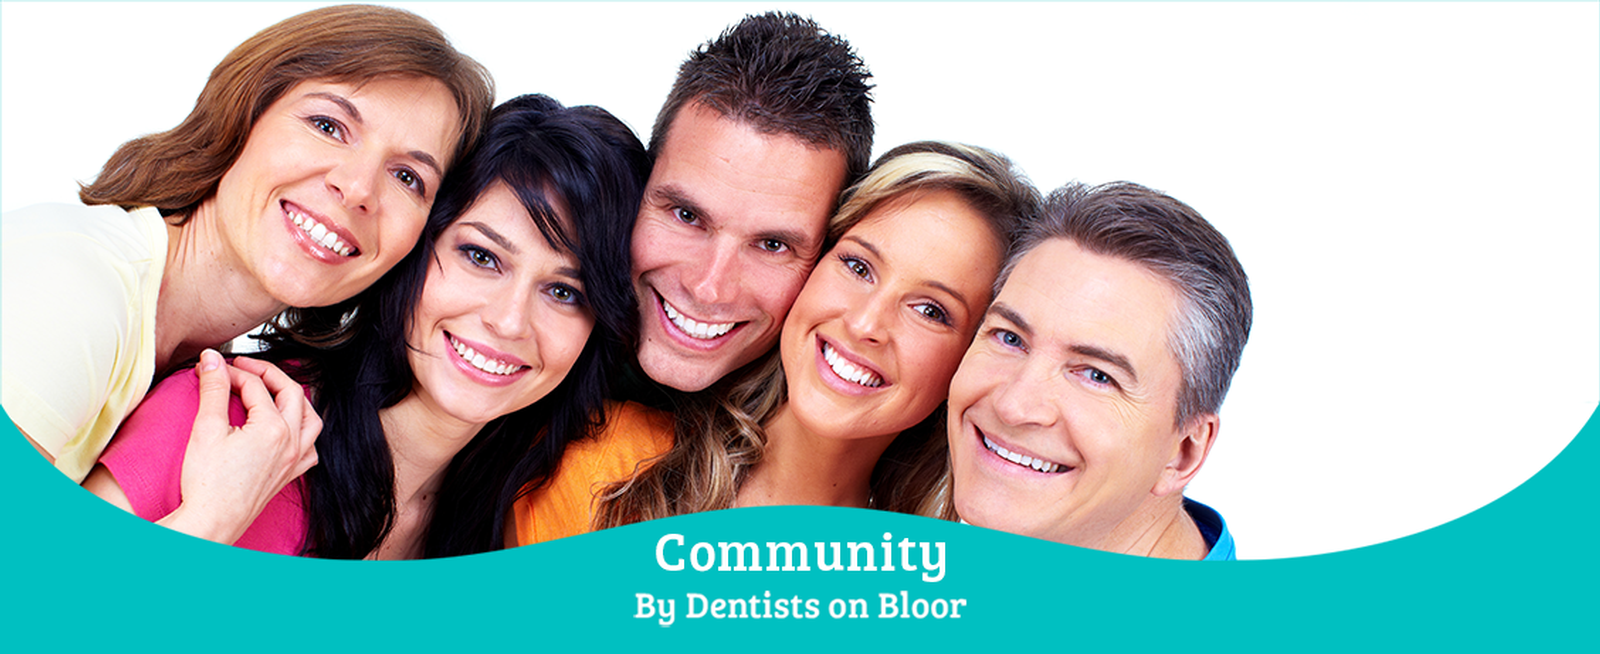 Community by Dentists on Bloor